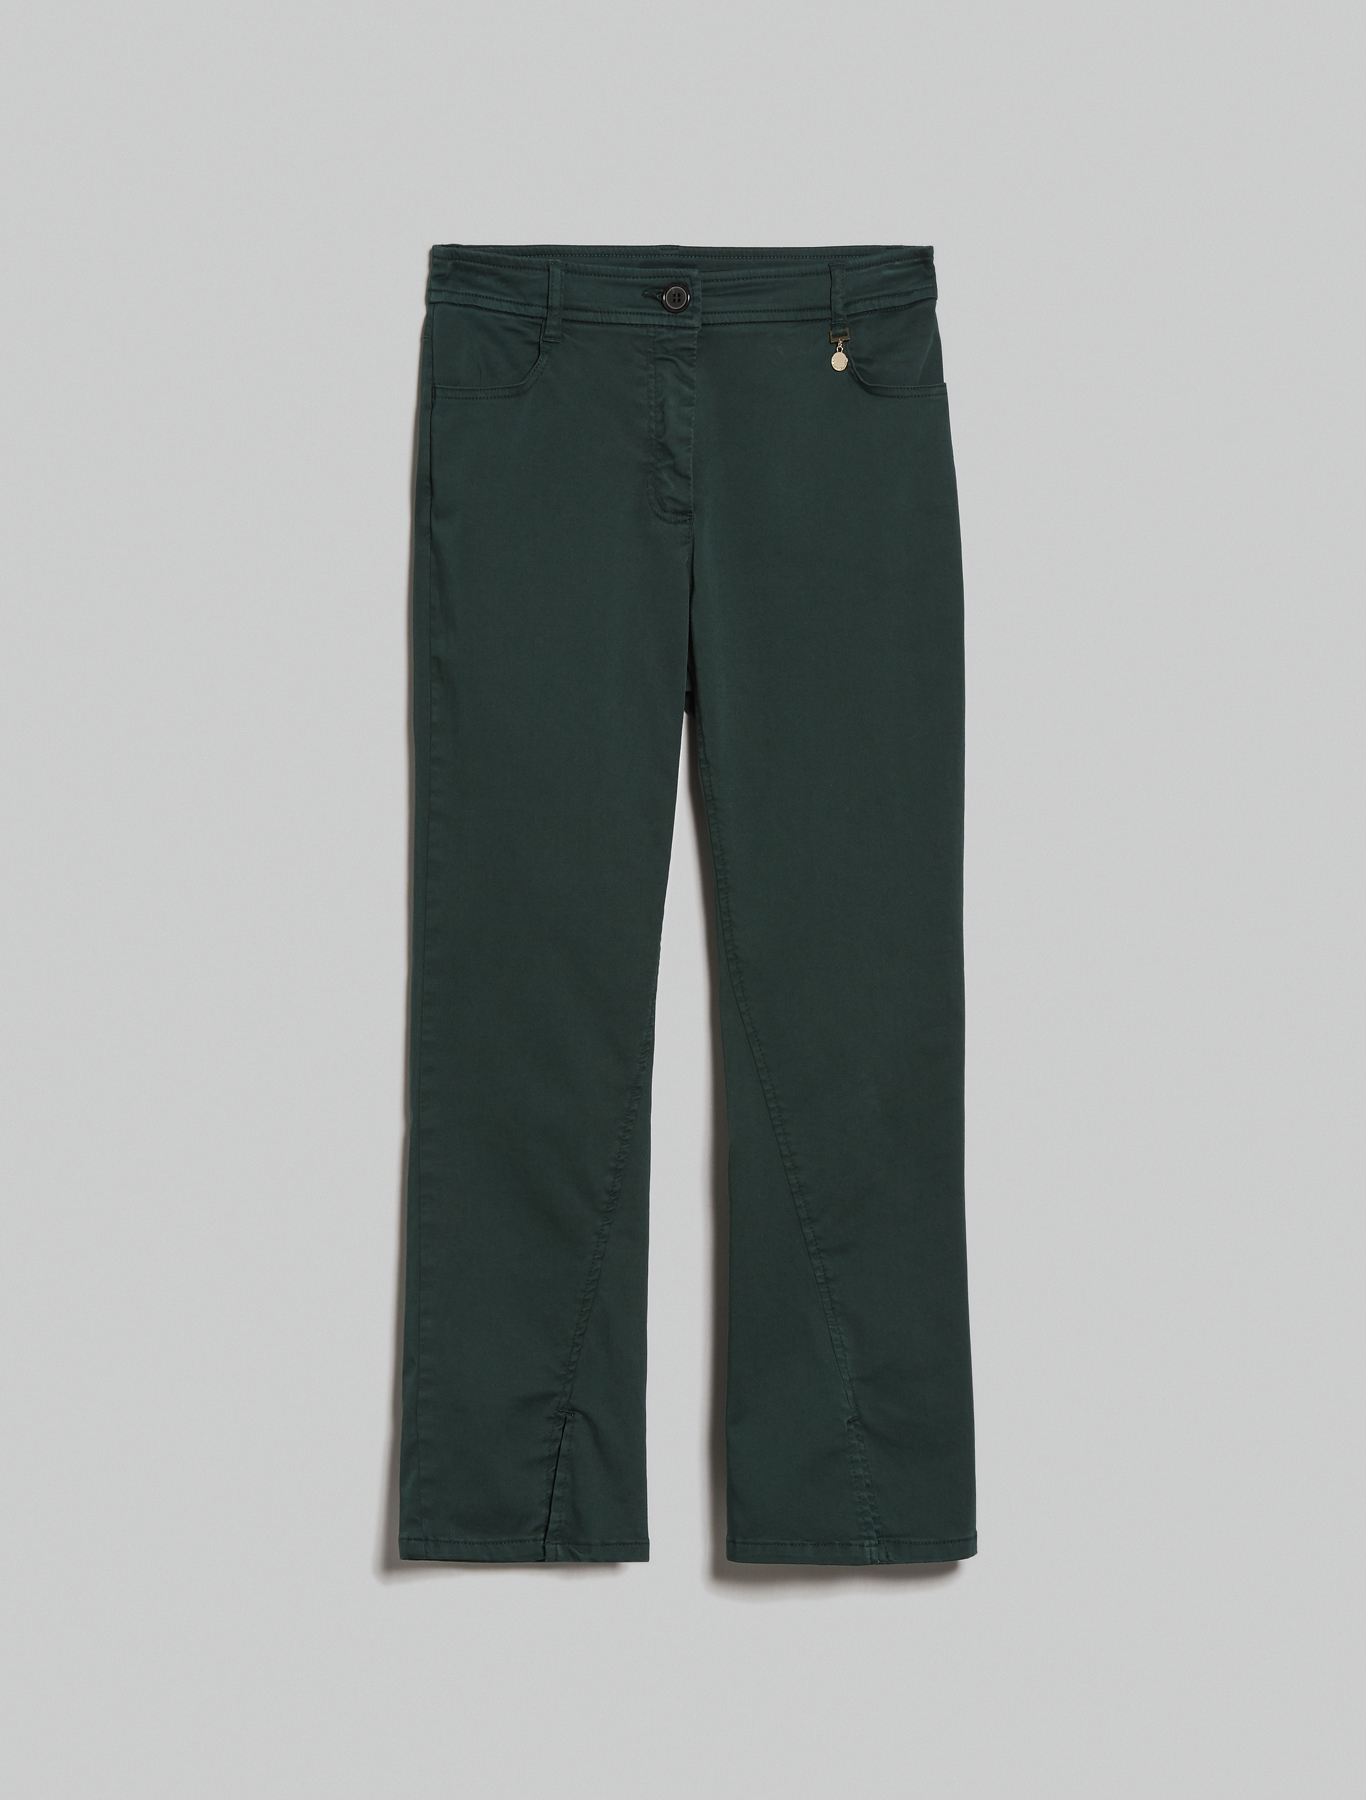 Kick-flare trousers - green - pennyblack